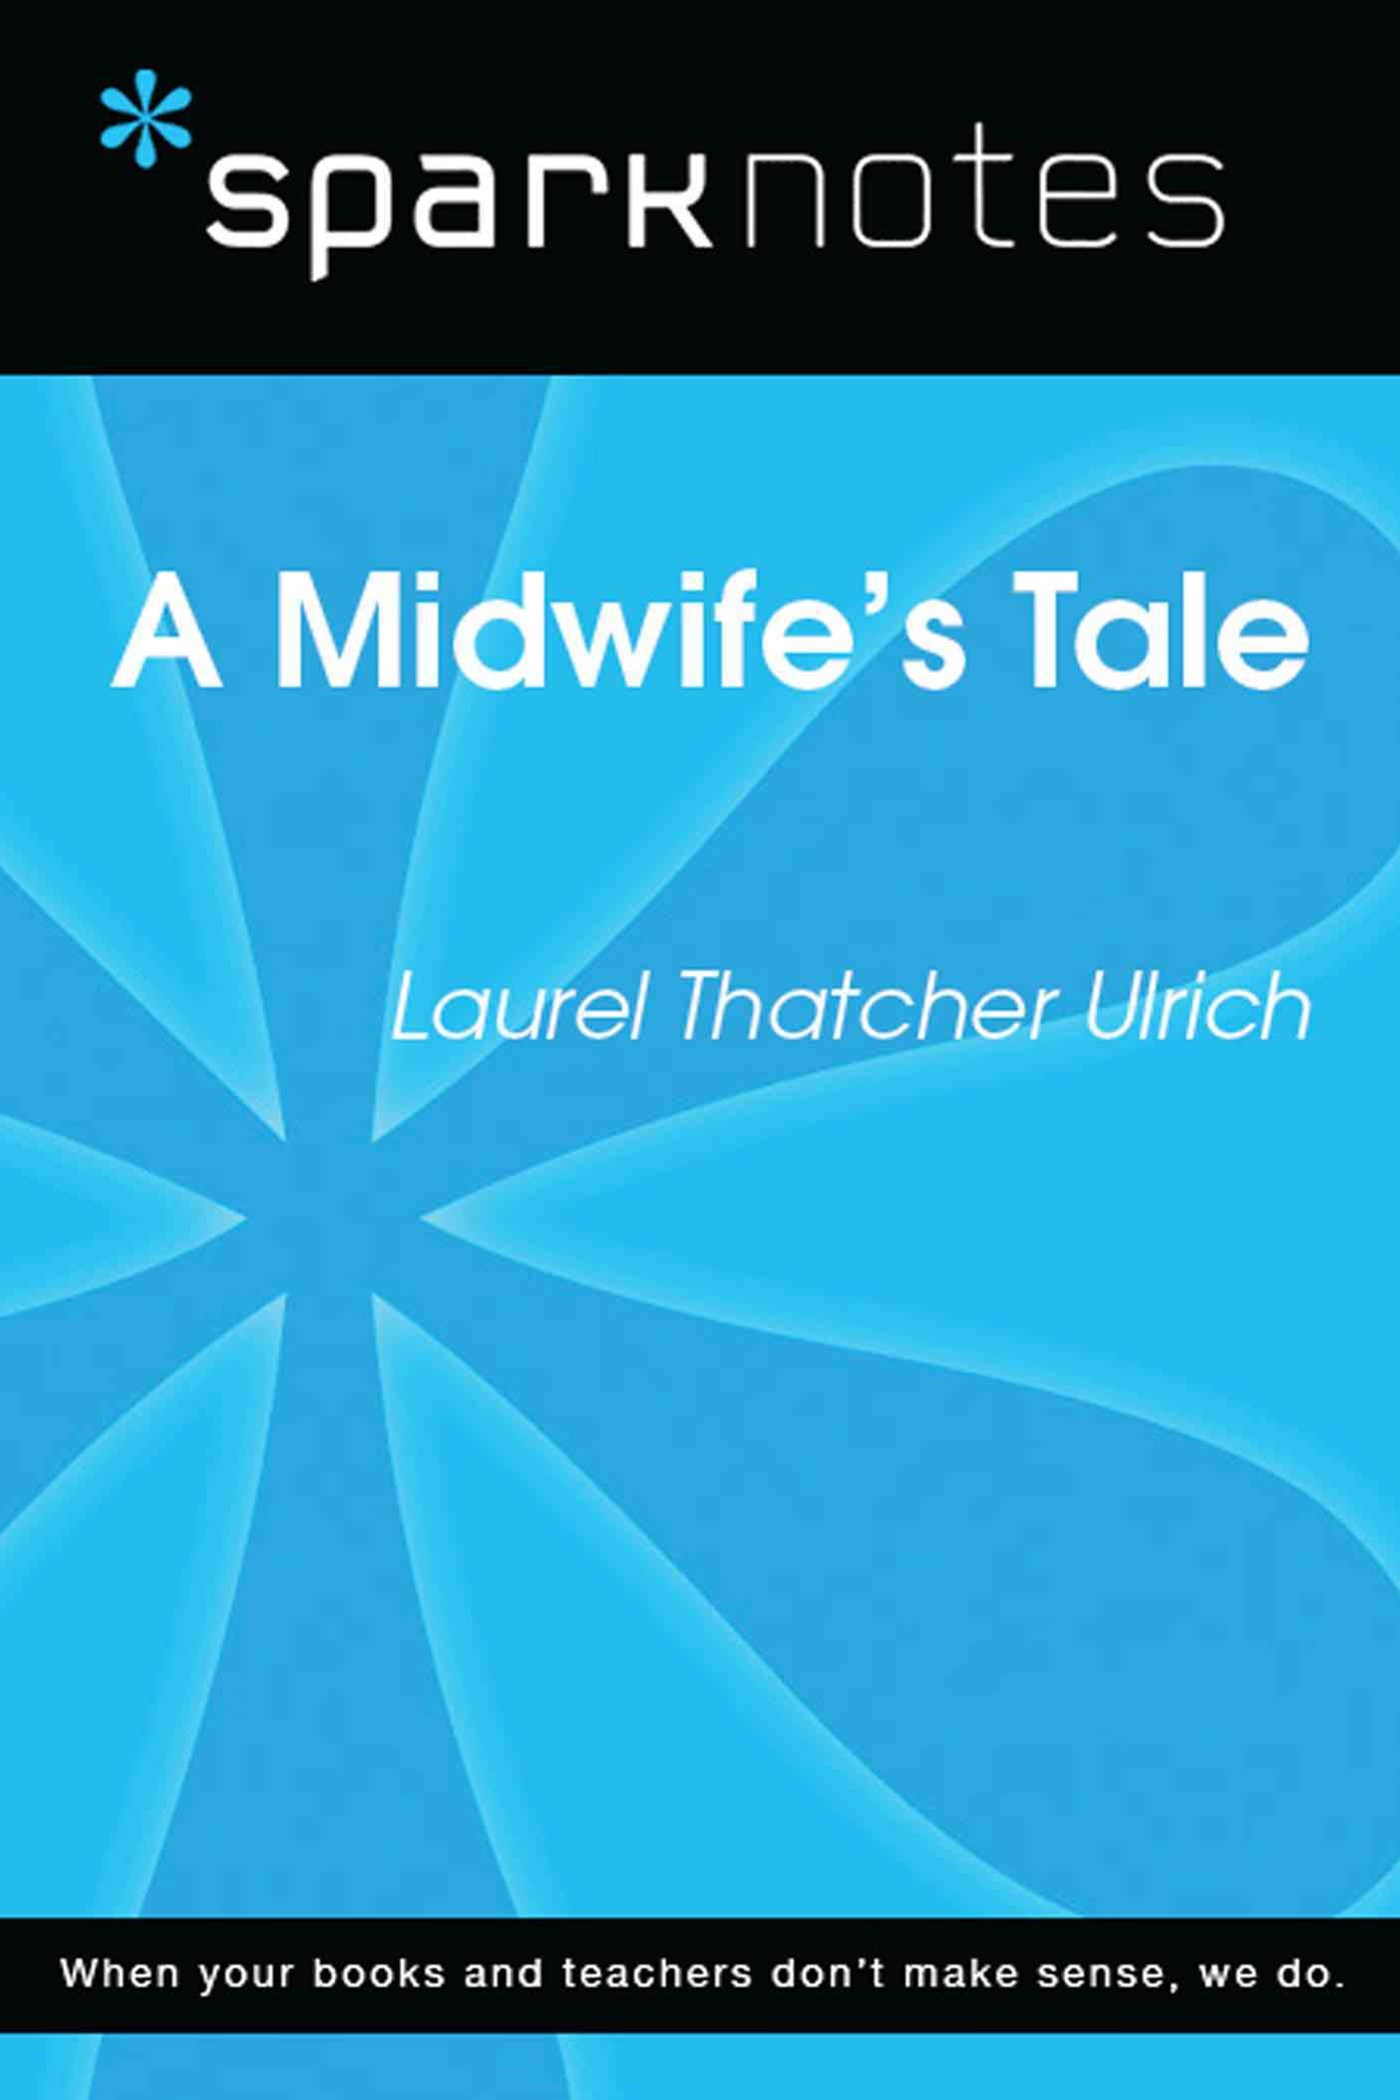 A Midwife's Tale (SparkNotes Literature Guide)